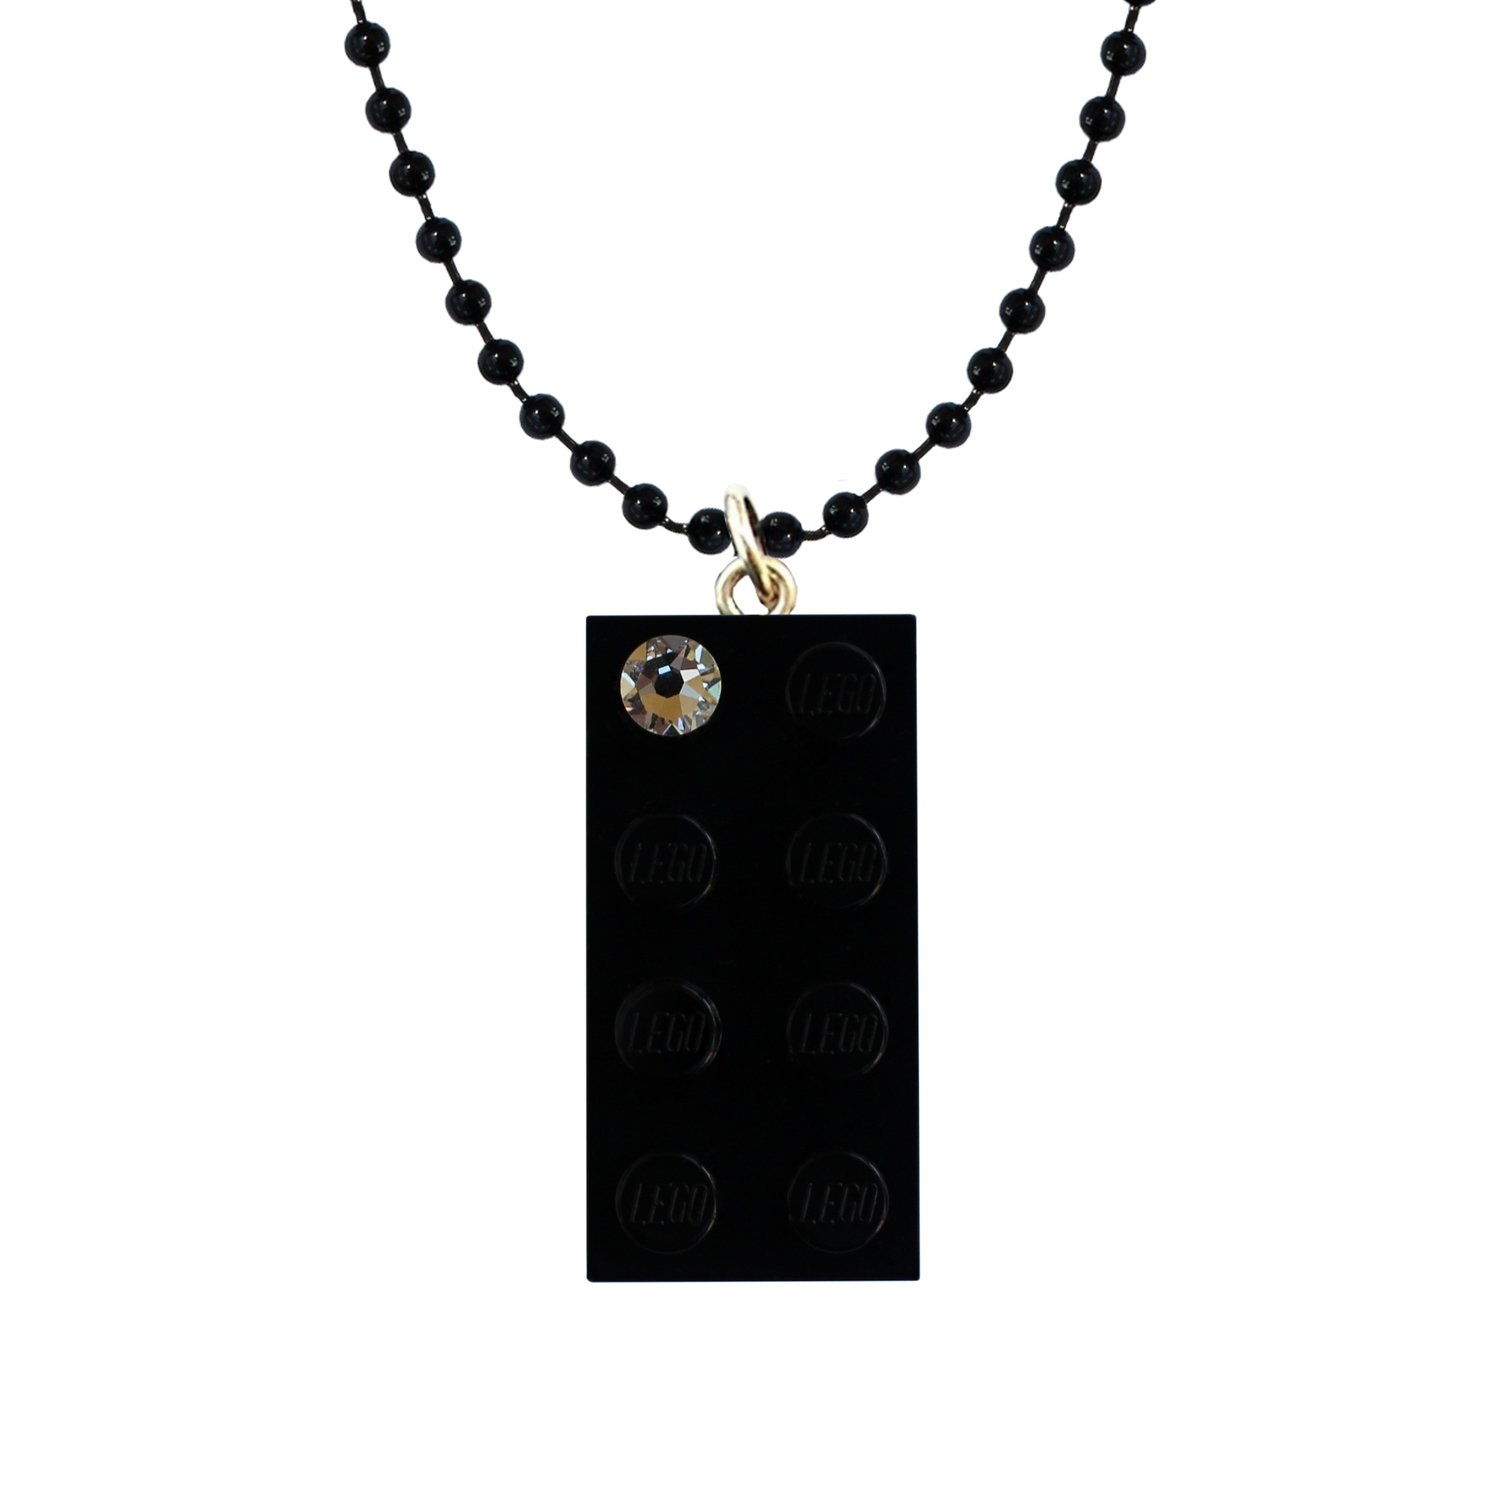 "Black LEGO® brick 2x4 with a 'Diamond' color SWAROVSKI® crystal on a 24"" Black ballchain"